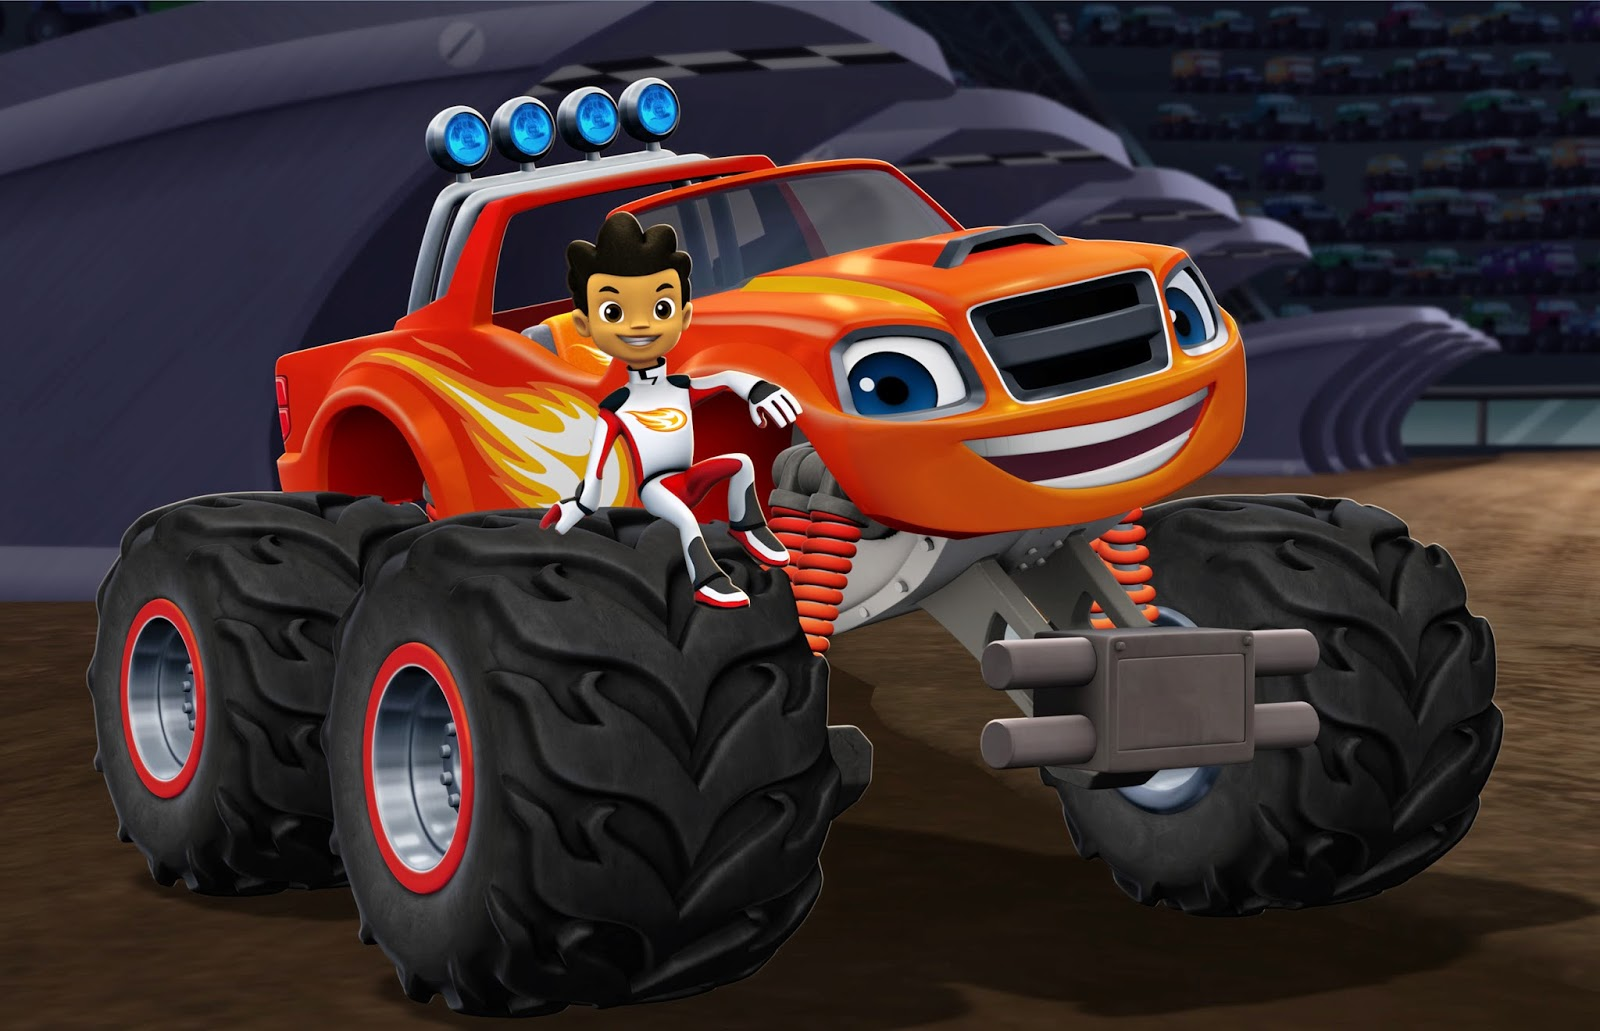 Nickelodeon USA To Premiere Blaze And The Monster Machines On Monday